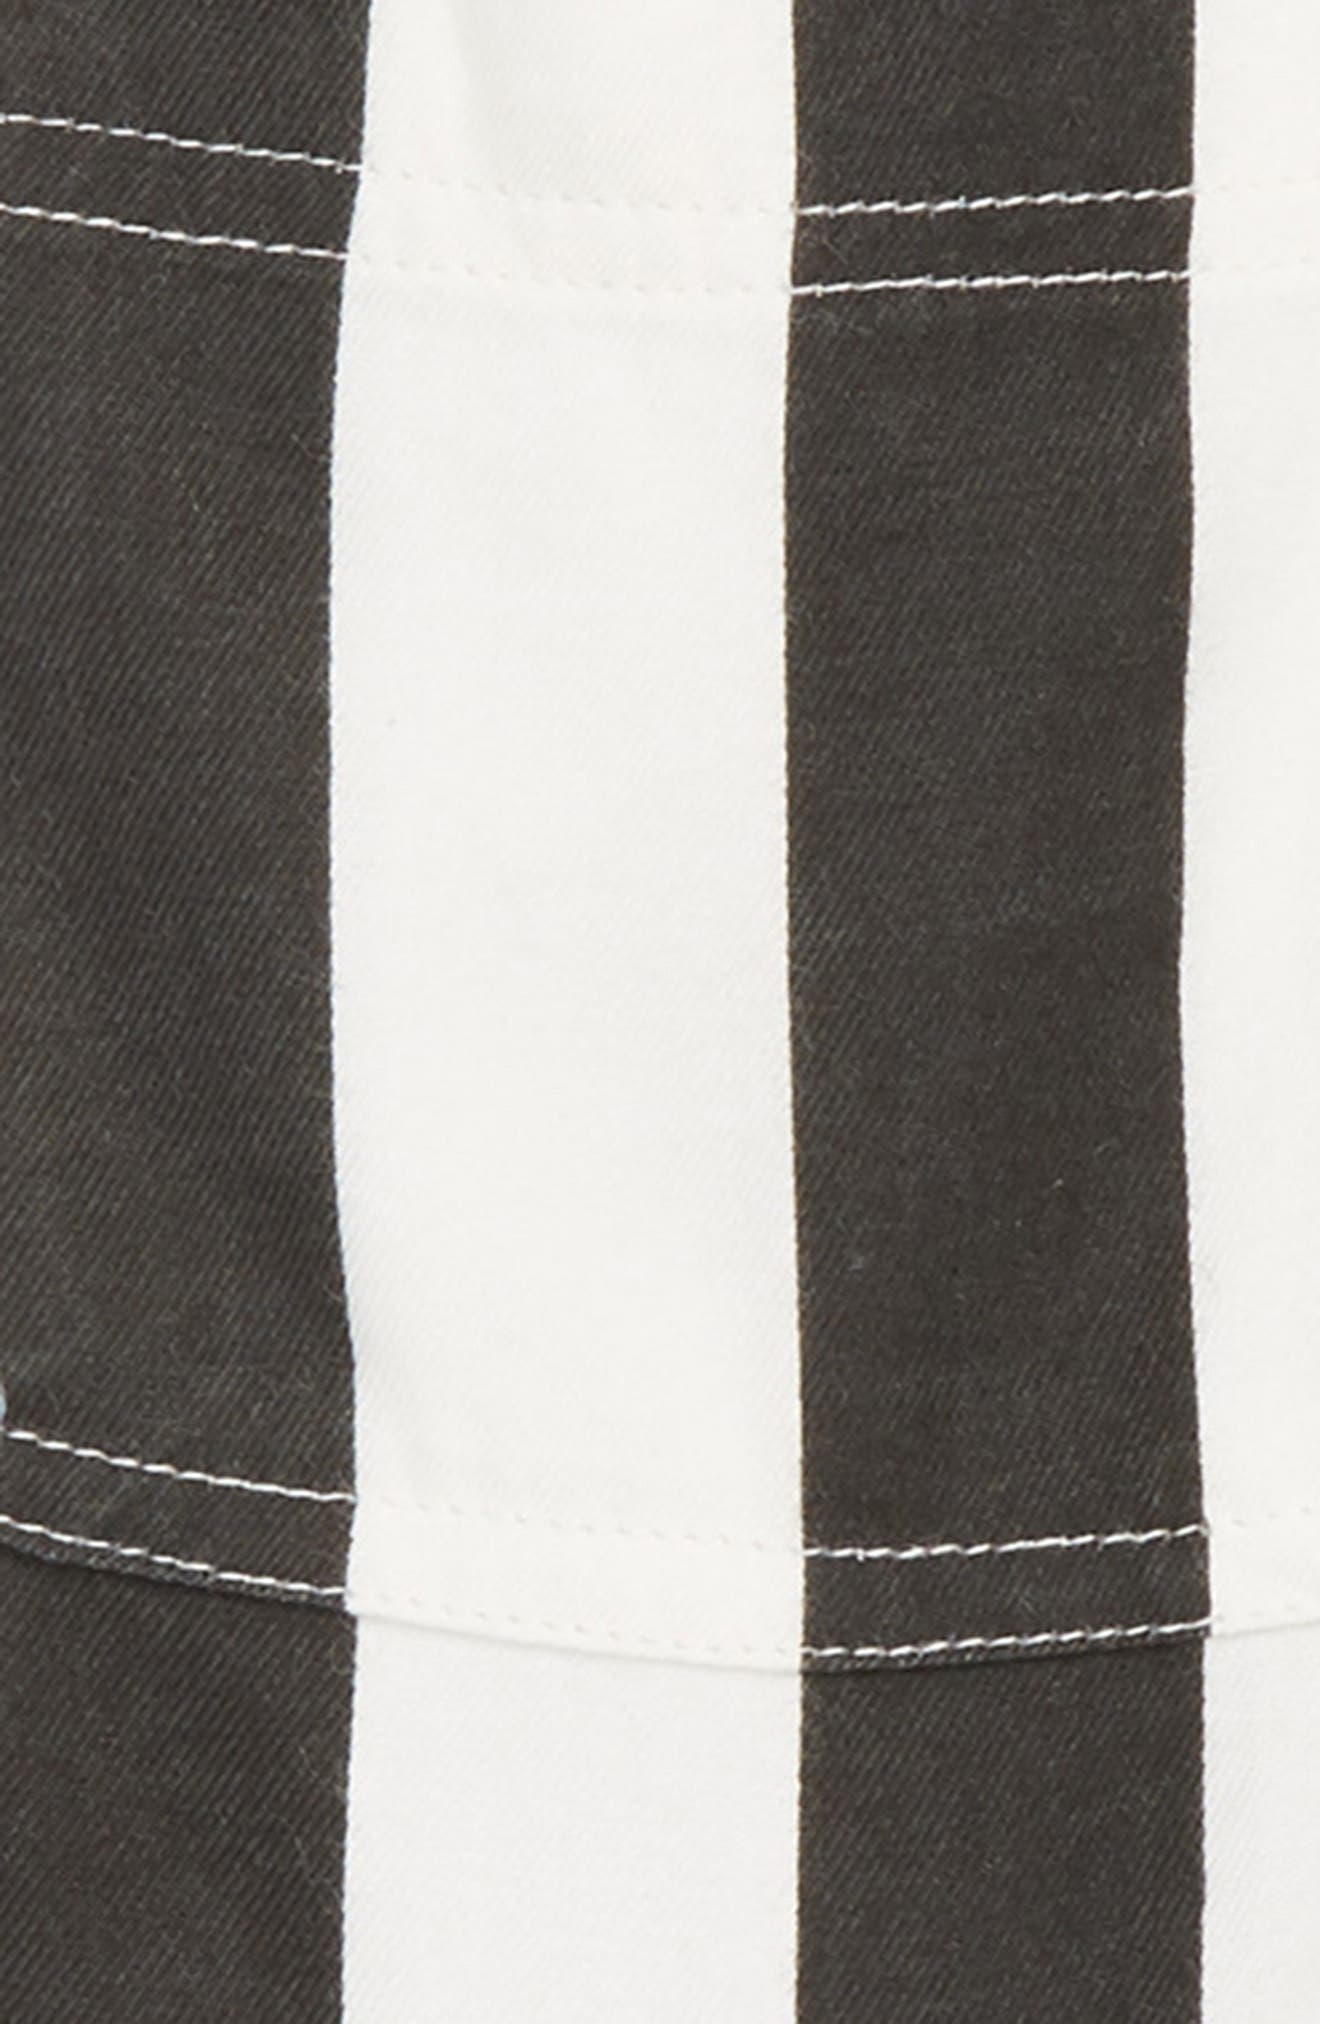 Roamin Stripe Short Overalls,                             Alternate thumbnail 2, color,                             001